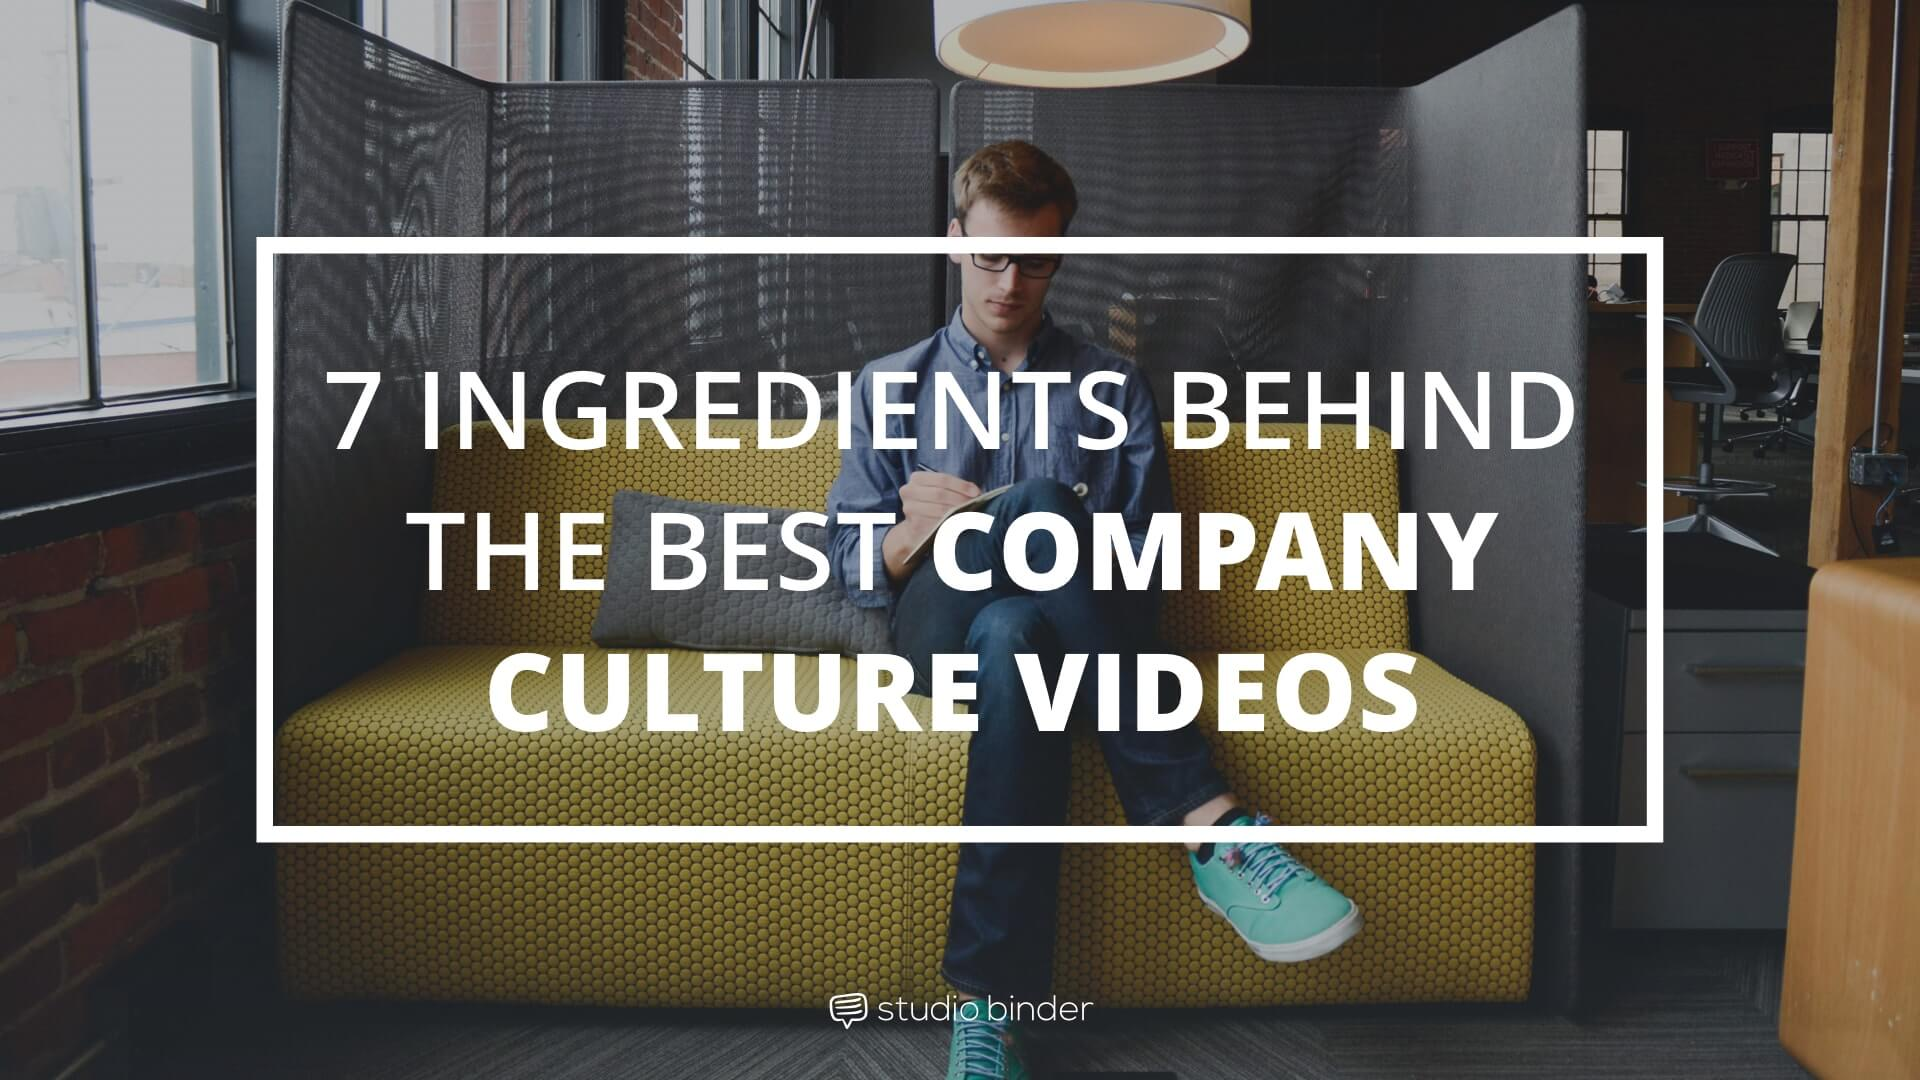 7 Ingredients Behind The Best Company Culture Videos - Featured - StudioBinder